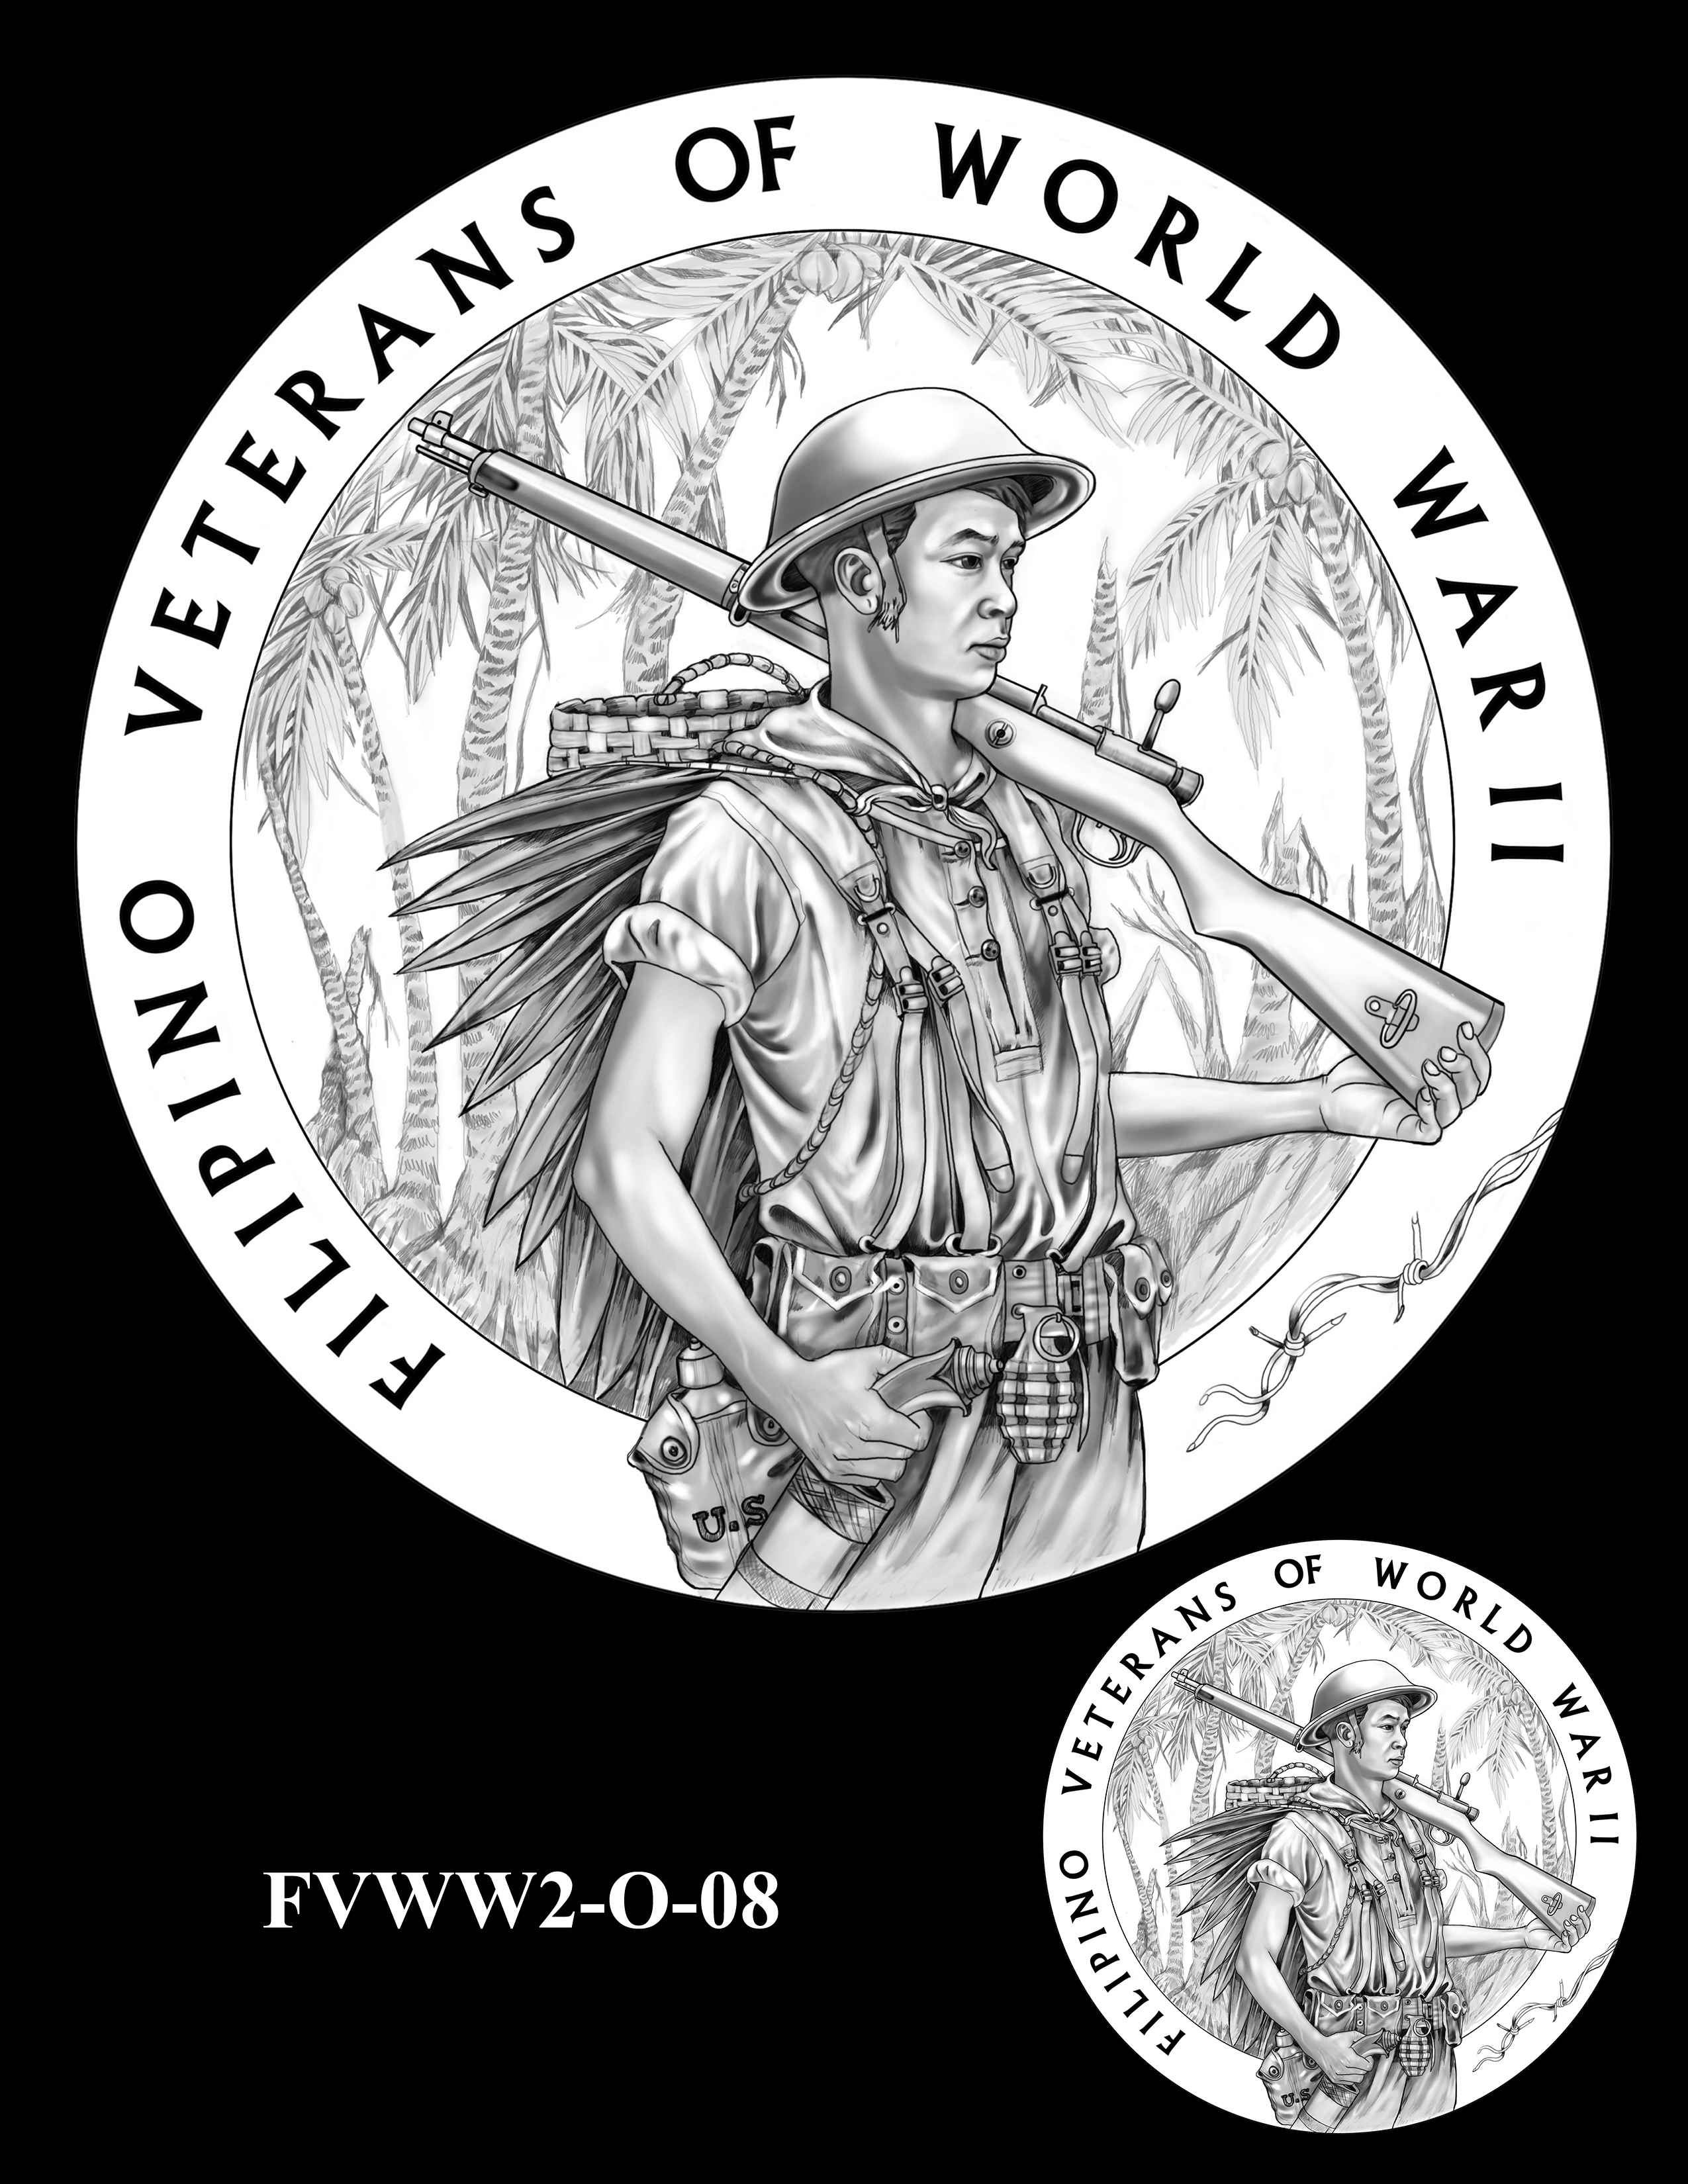 FVWW2-O-08 -- Filipino Veterans of World War II Congressional Gold Medal